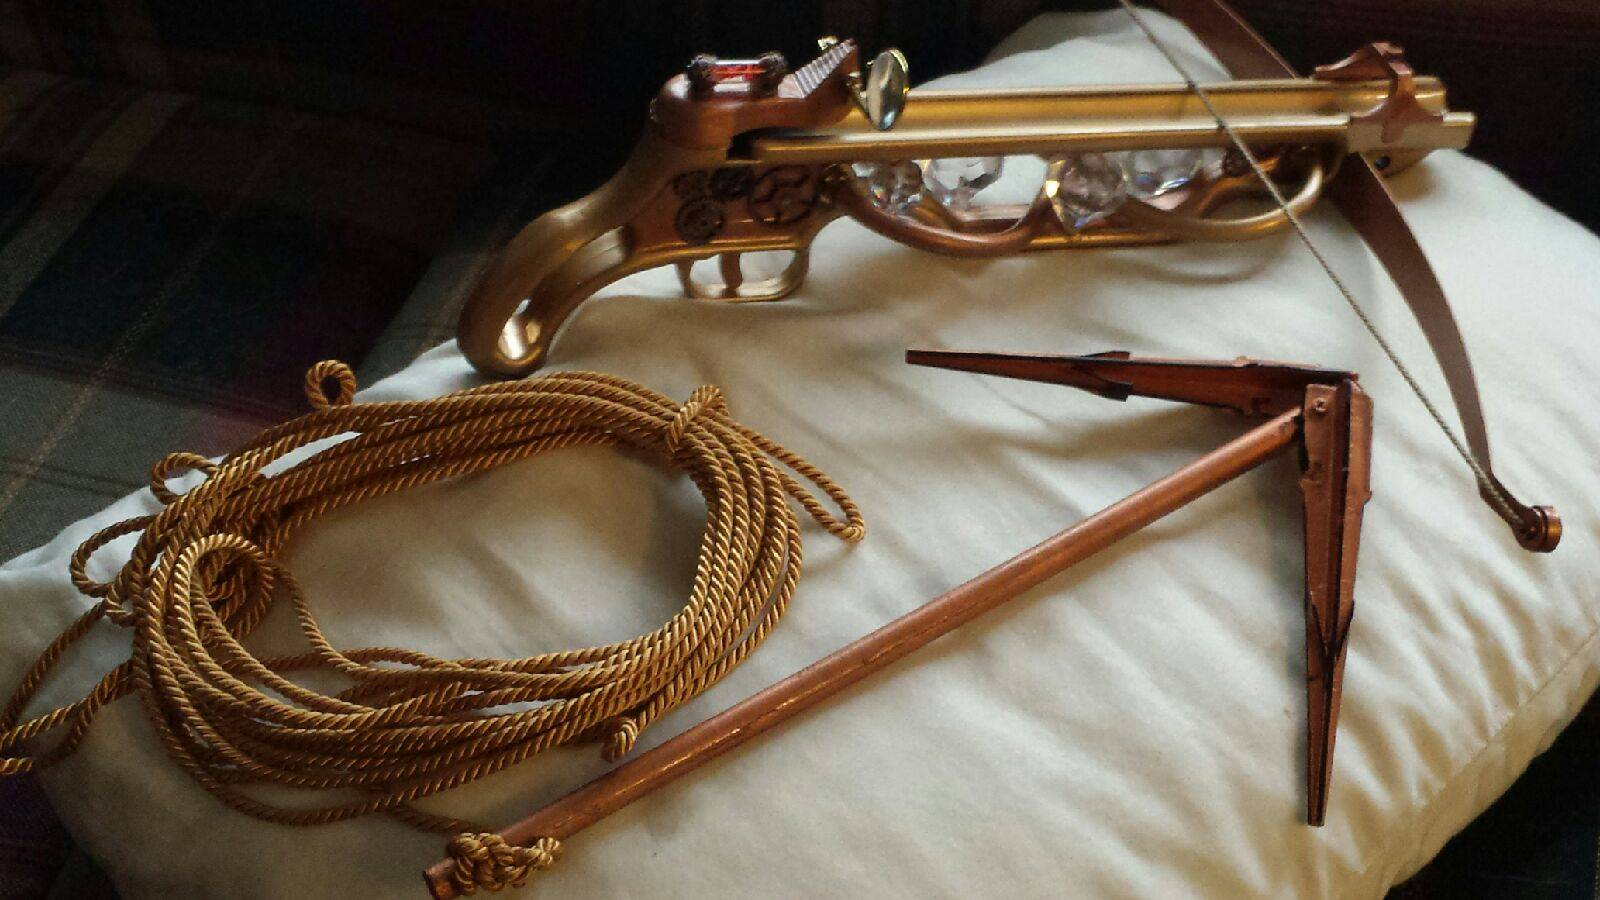 Helen's New Crossbow Grappling Hook